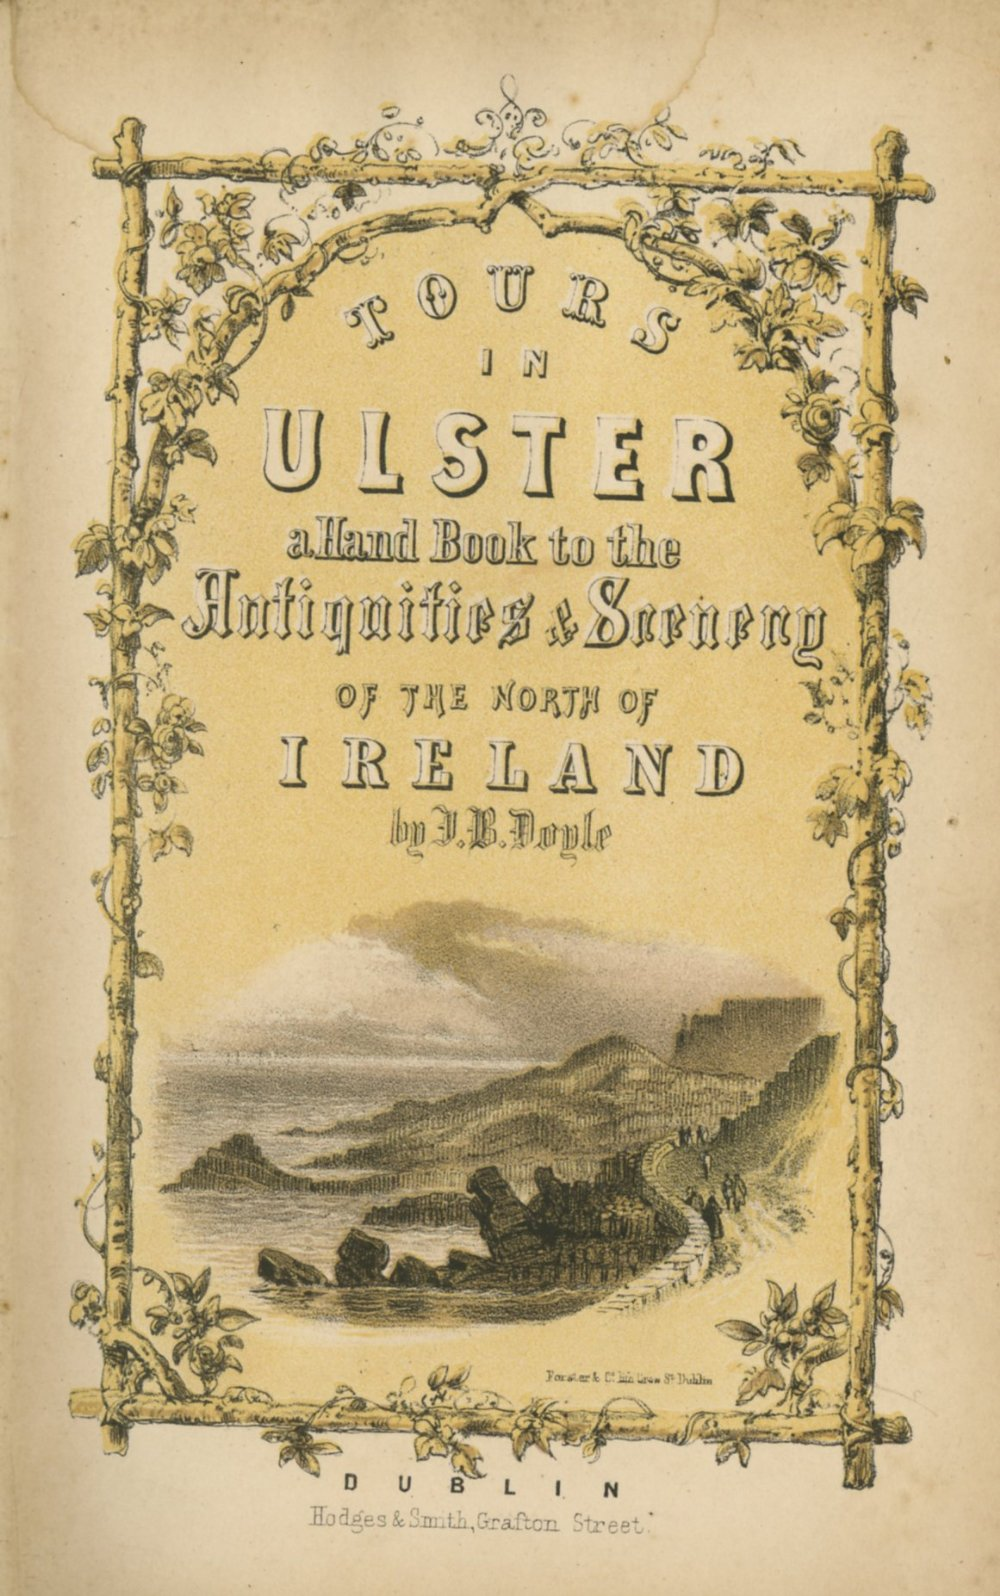 Northern Ireland: Doyle (J.B.) Tours in Ulster: A Handbook of The Antiquities and Scenery... sm.